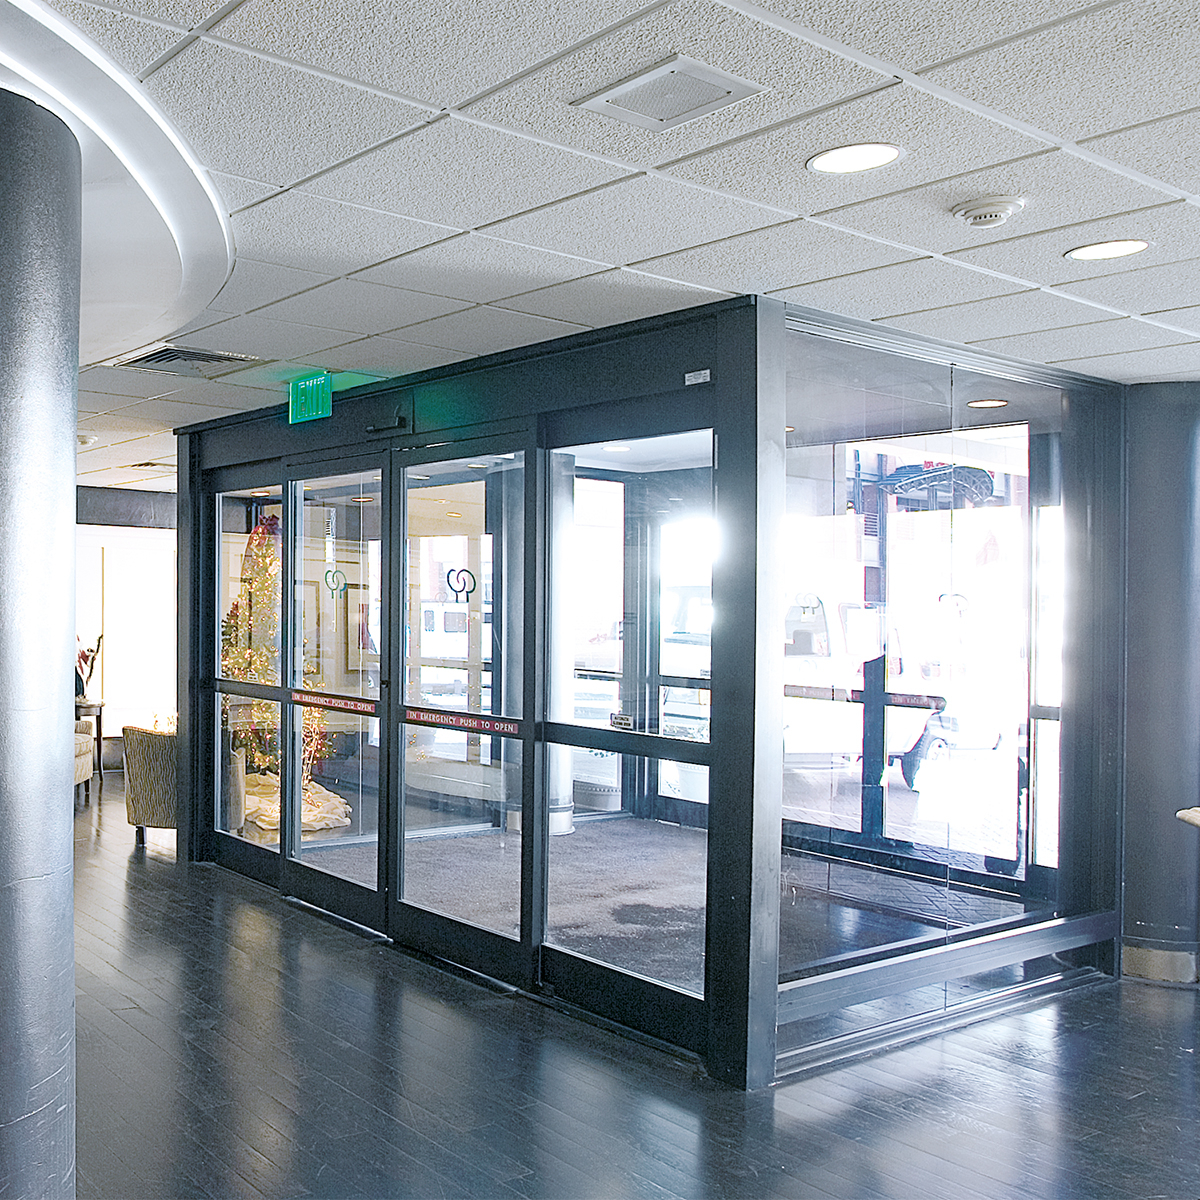 Dorma Esa 300 Commercial Full Breakout Automatic Sliding Door